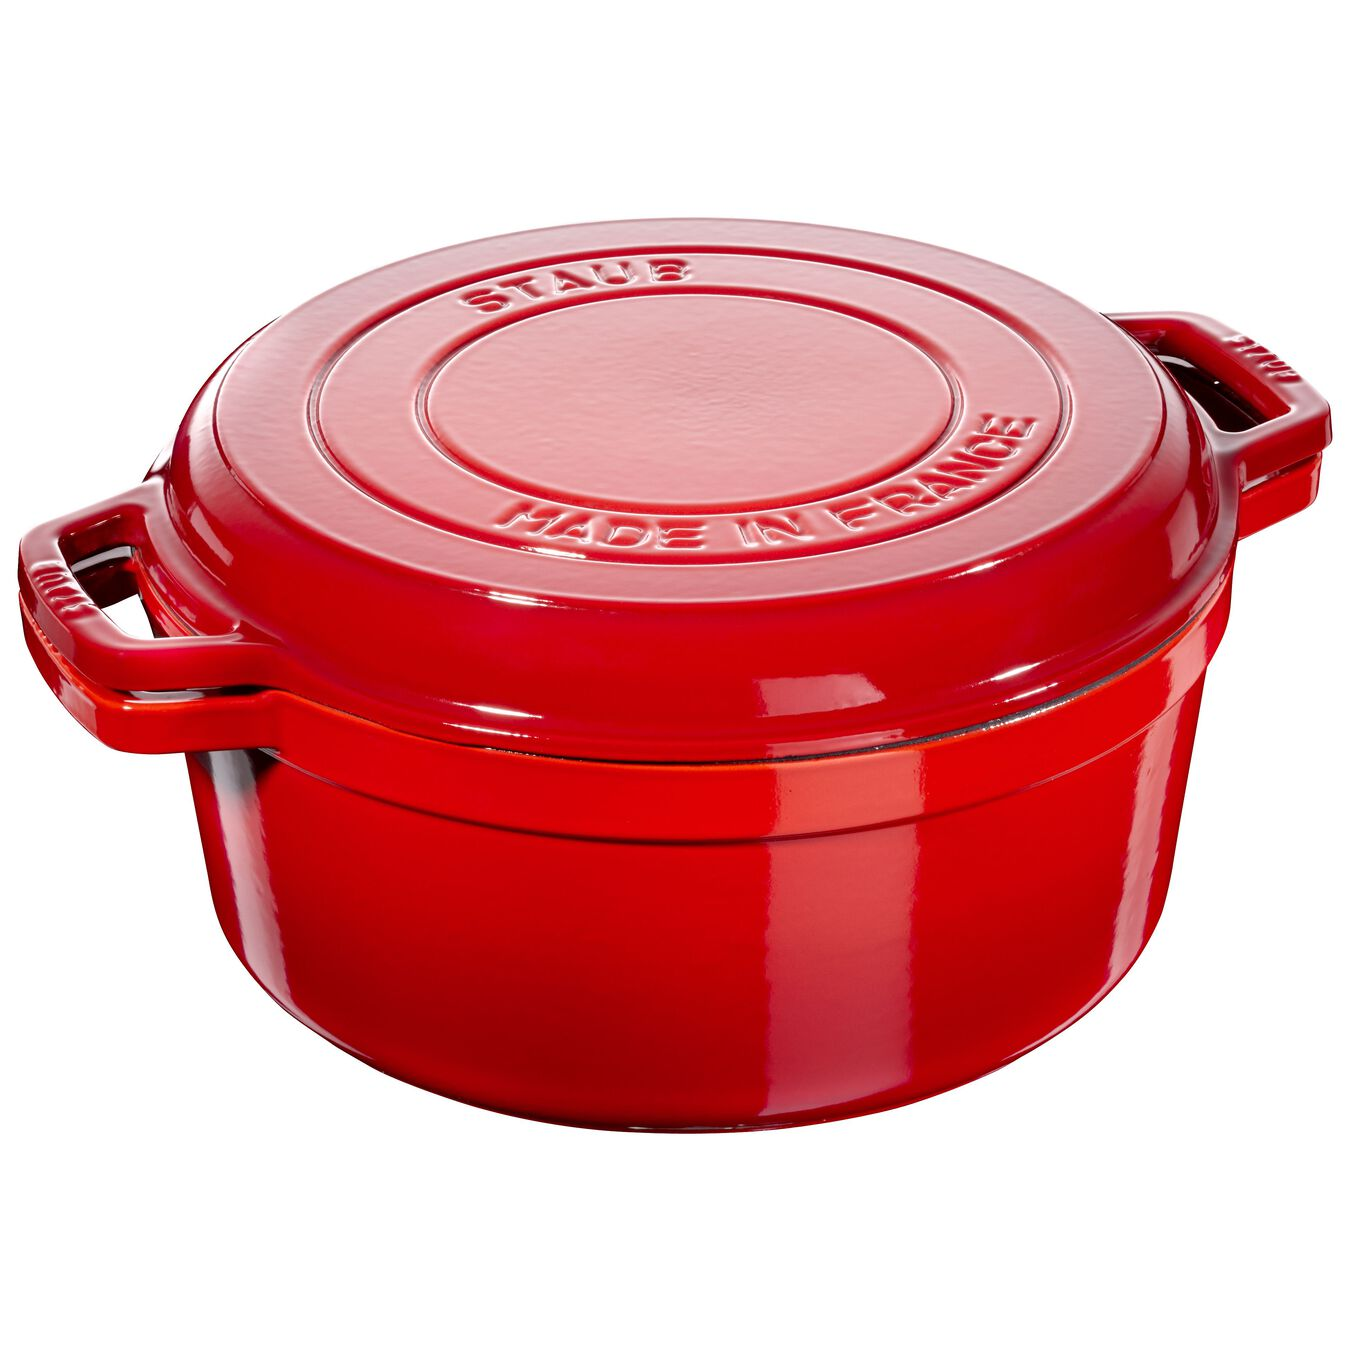 6 l round Braise + Grill, cherry - Visual Imperfections,,large 1